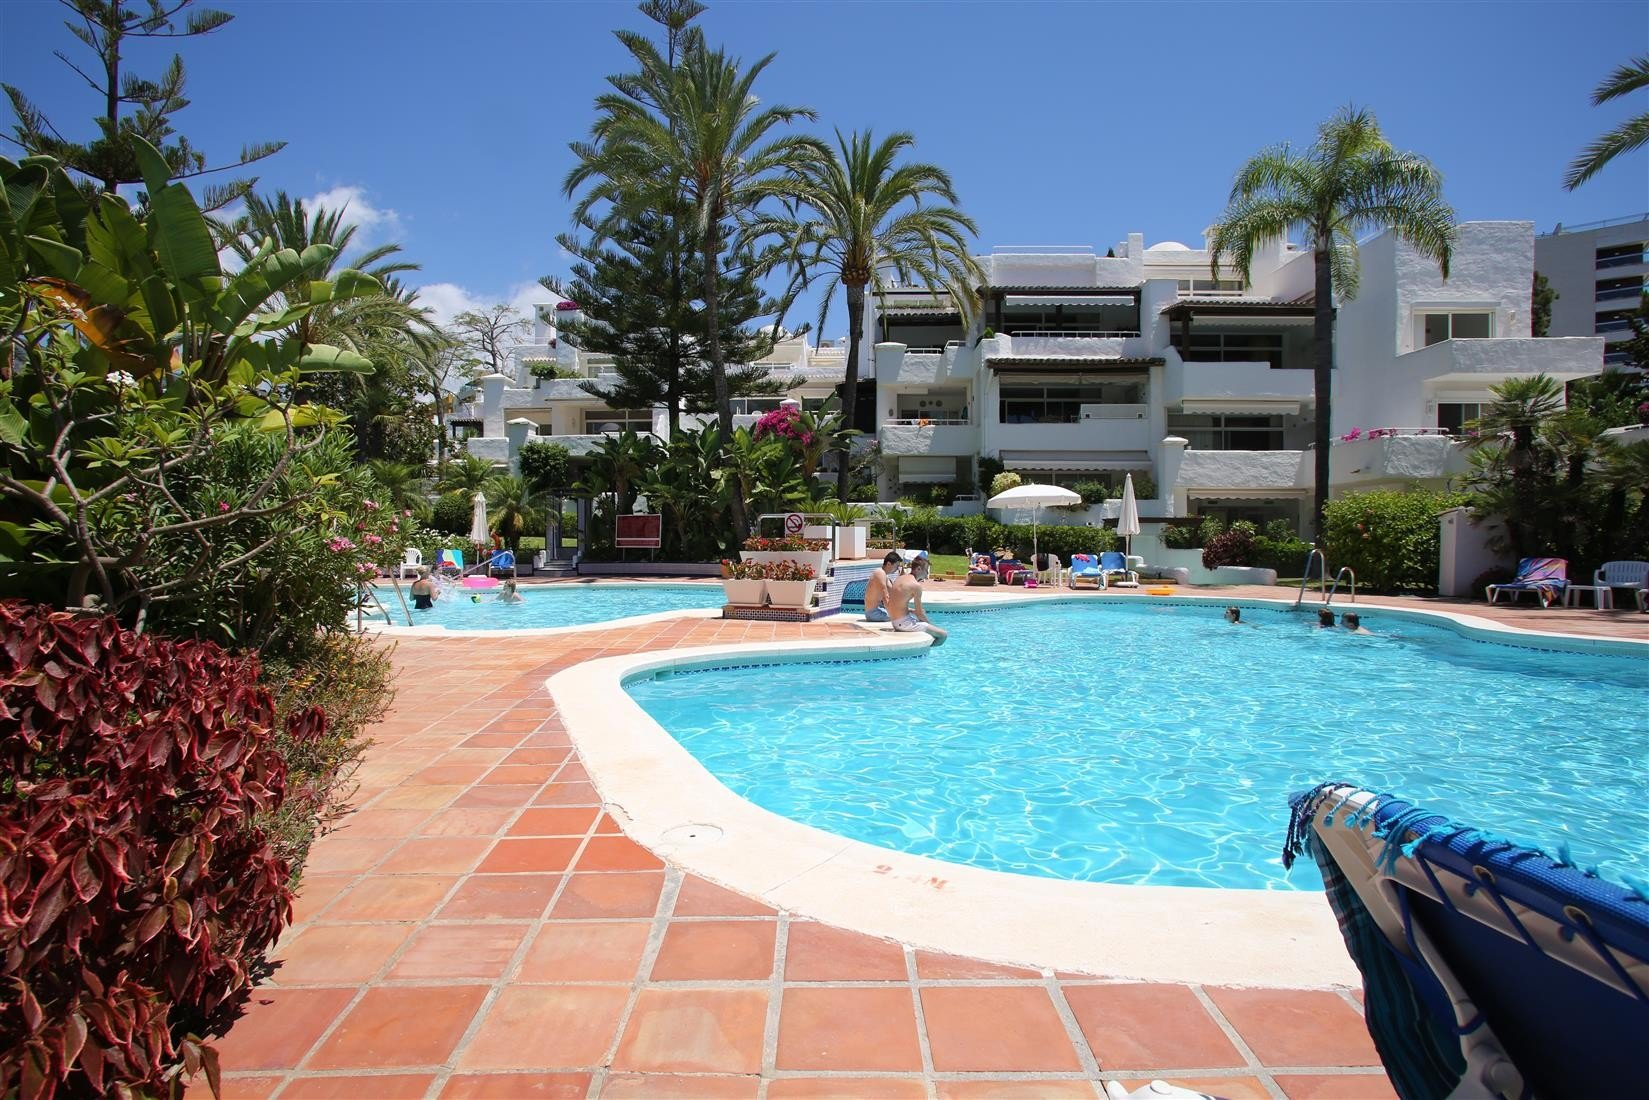 Apartment for rent in Marbella, Alhambra del Mar